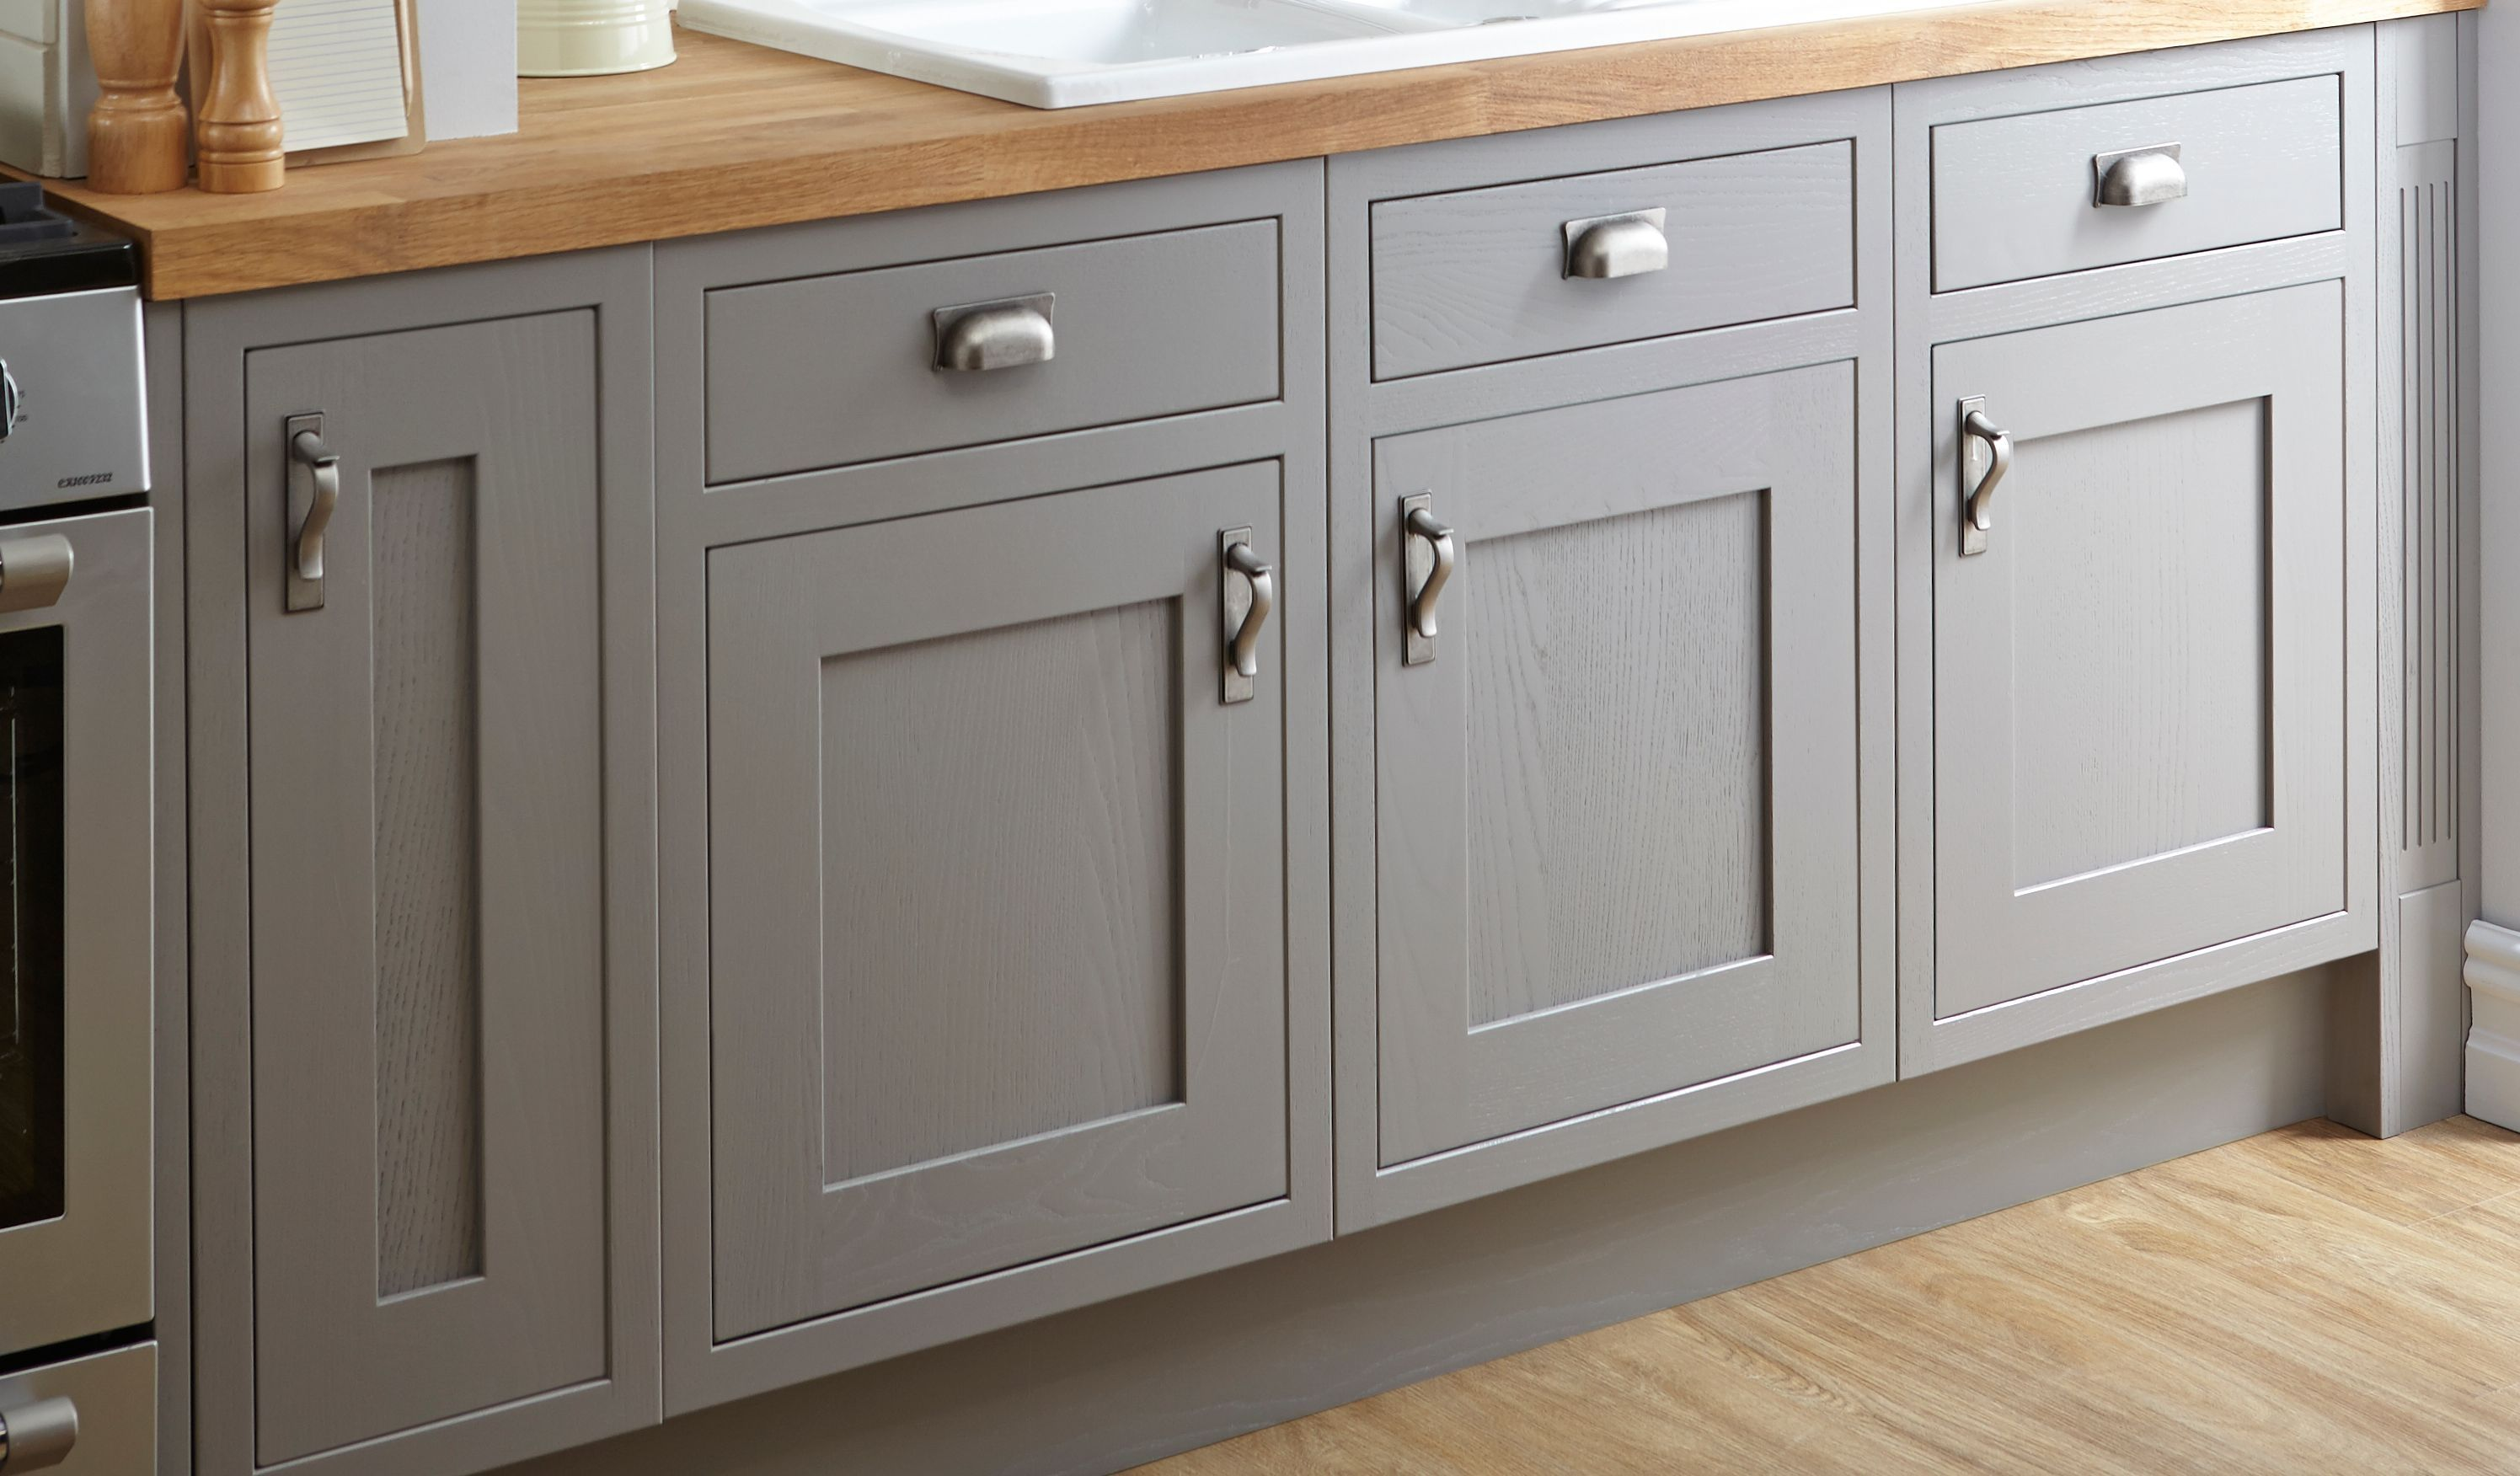 Replacement Kitchen Cabinet Doors Shaker Style Kitchen Cupboard Doors Shaker Style | Kitchen cabidoor styles